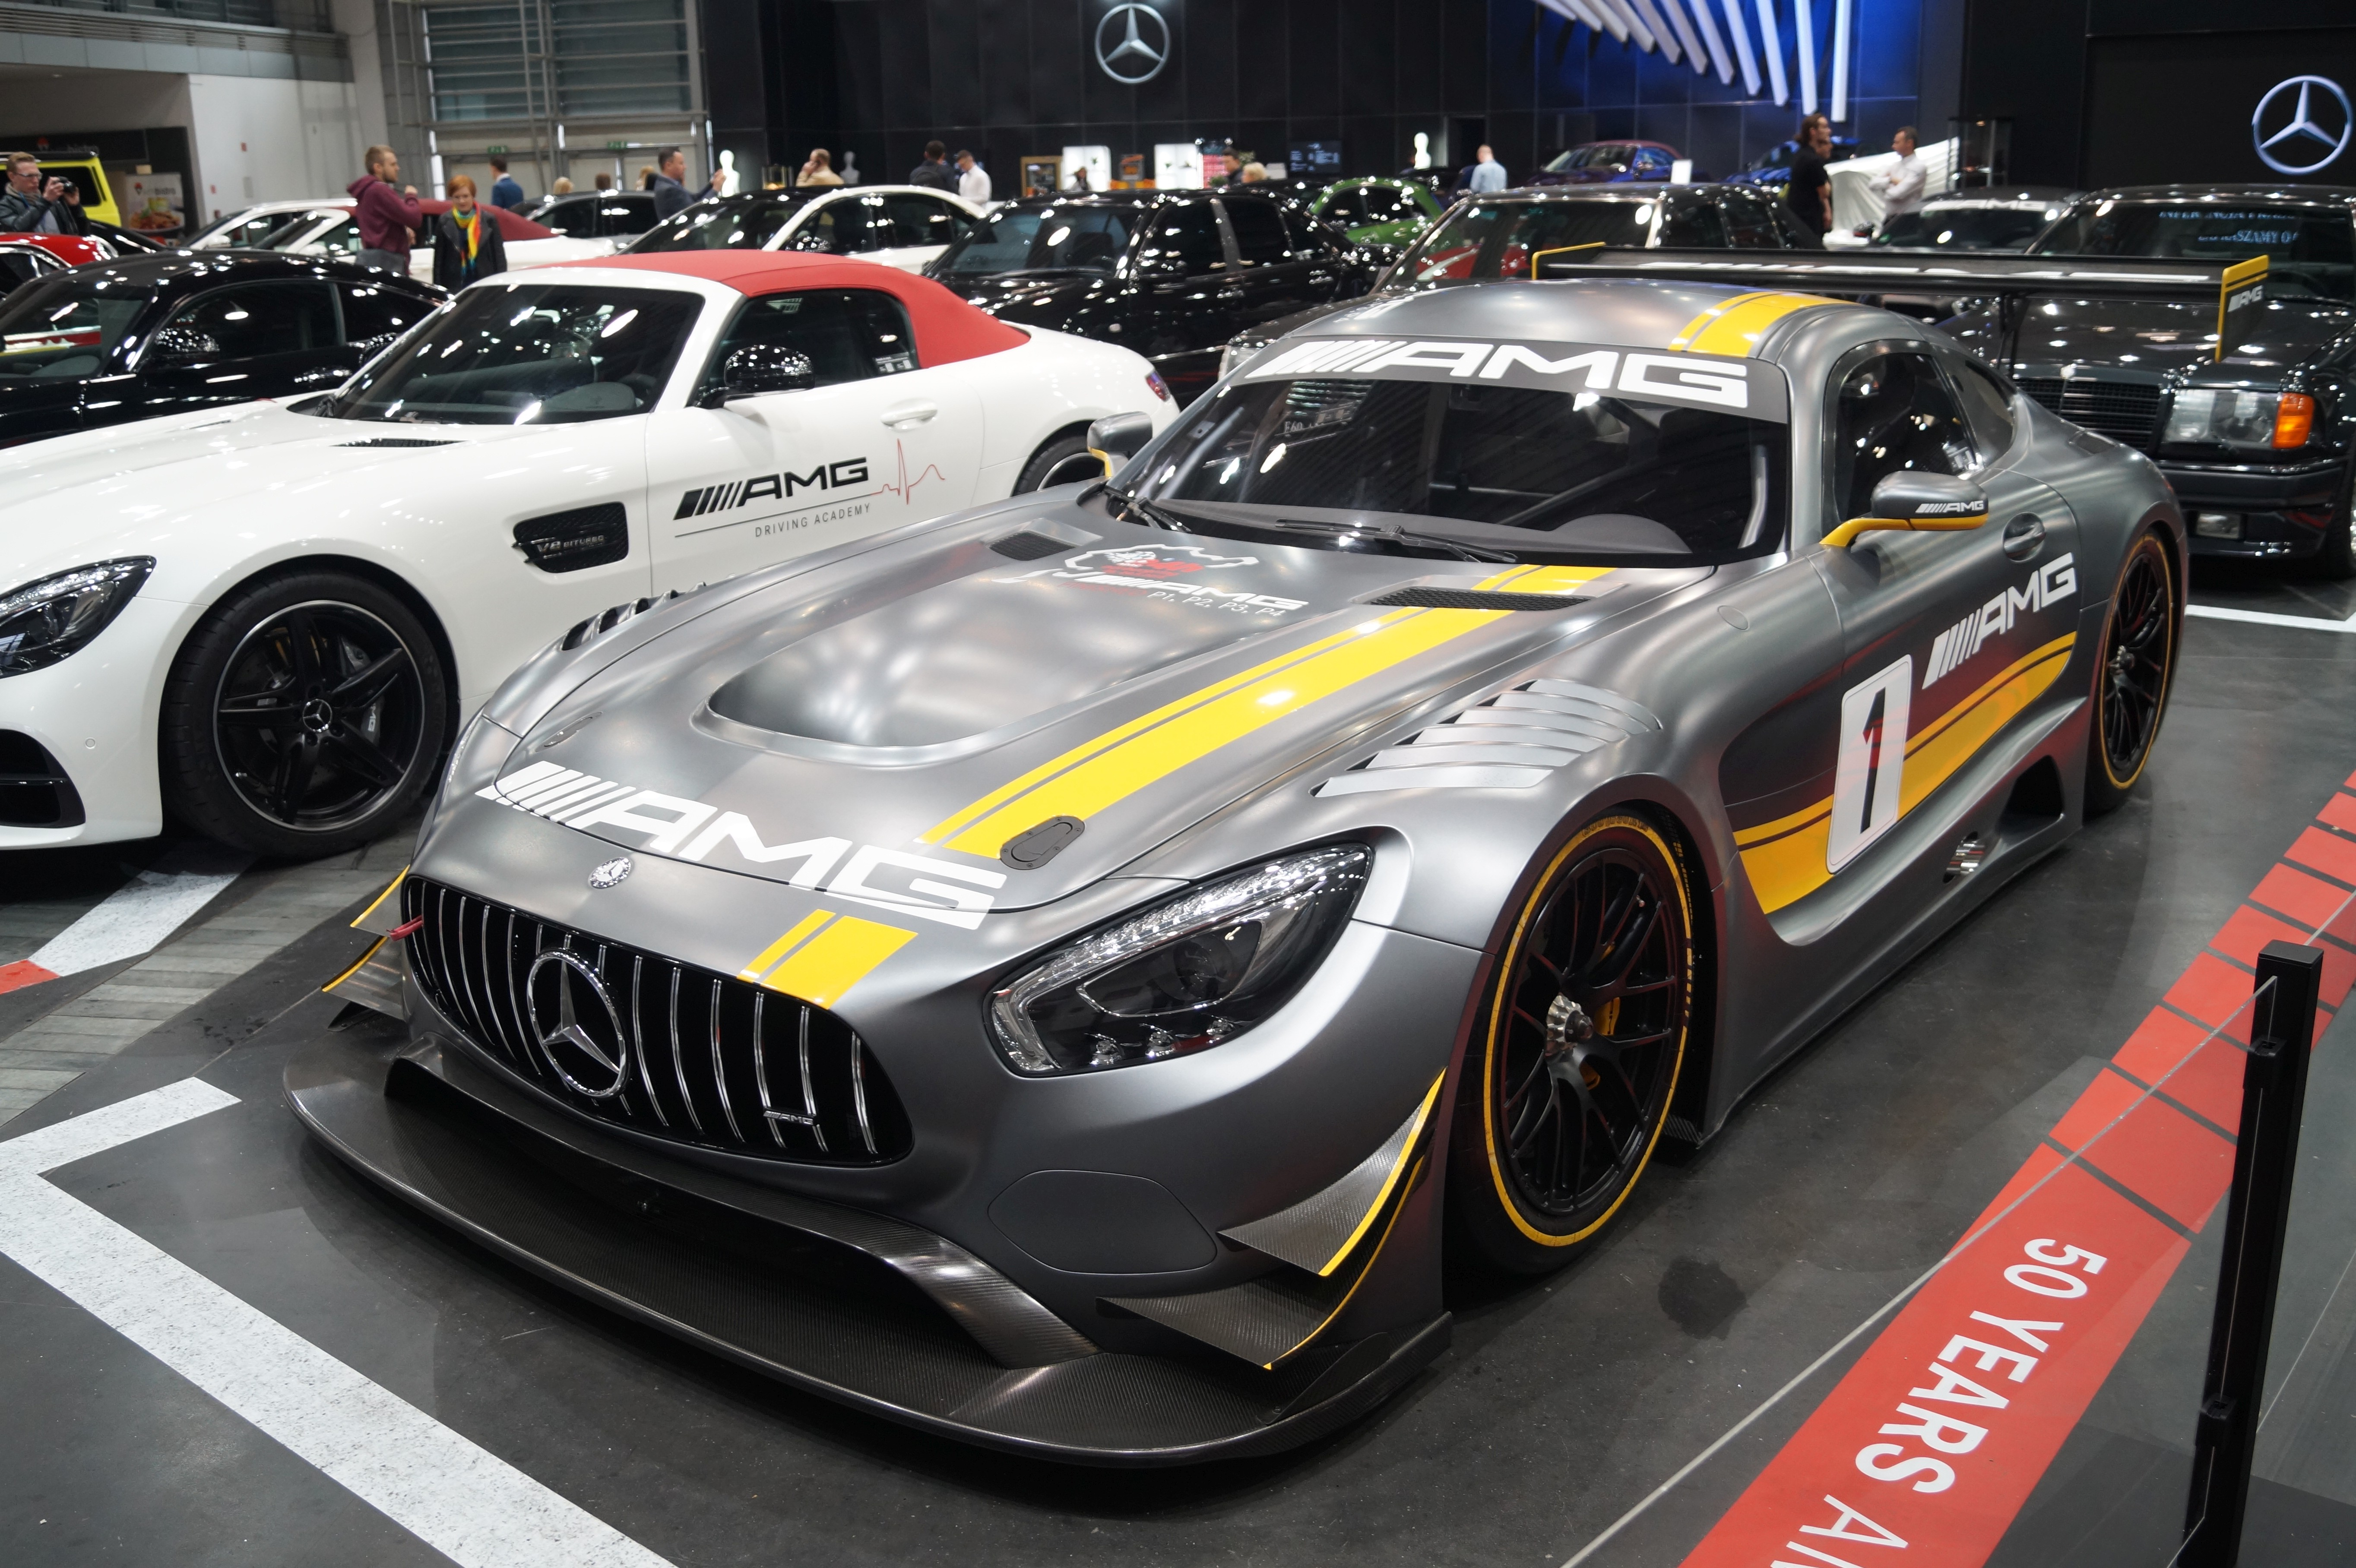 file mercedes amg gt3 lewy prz d msp17 jpg wikimedia commons. Black Bedroom Furniture Sets. Home Design Ideas